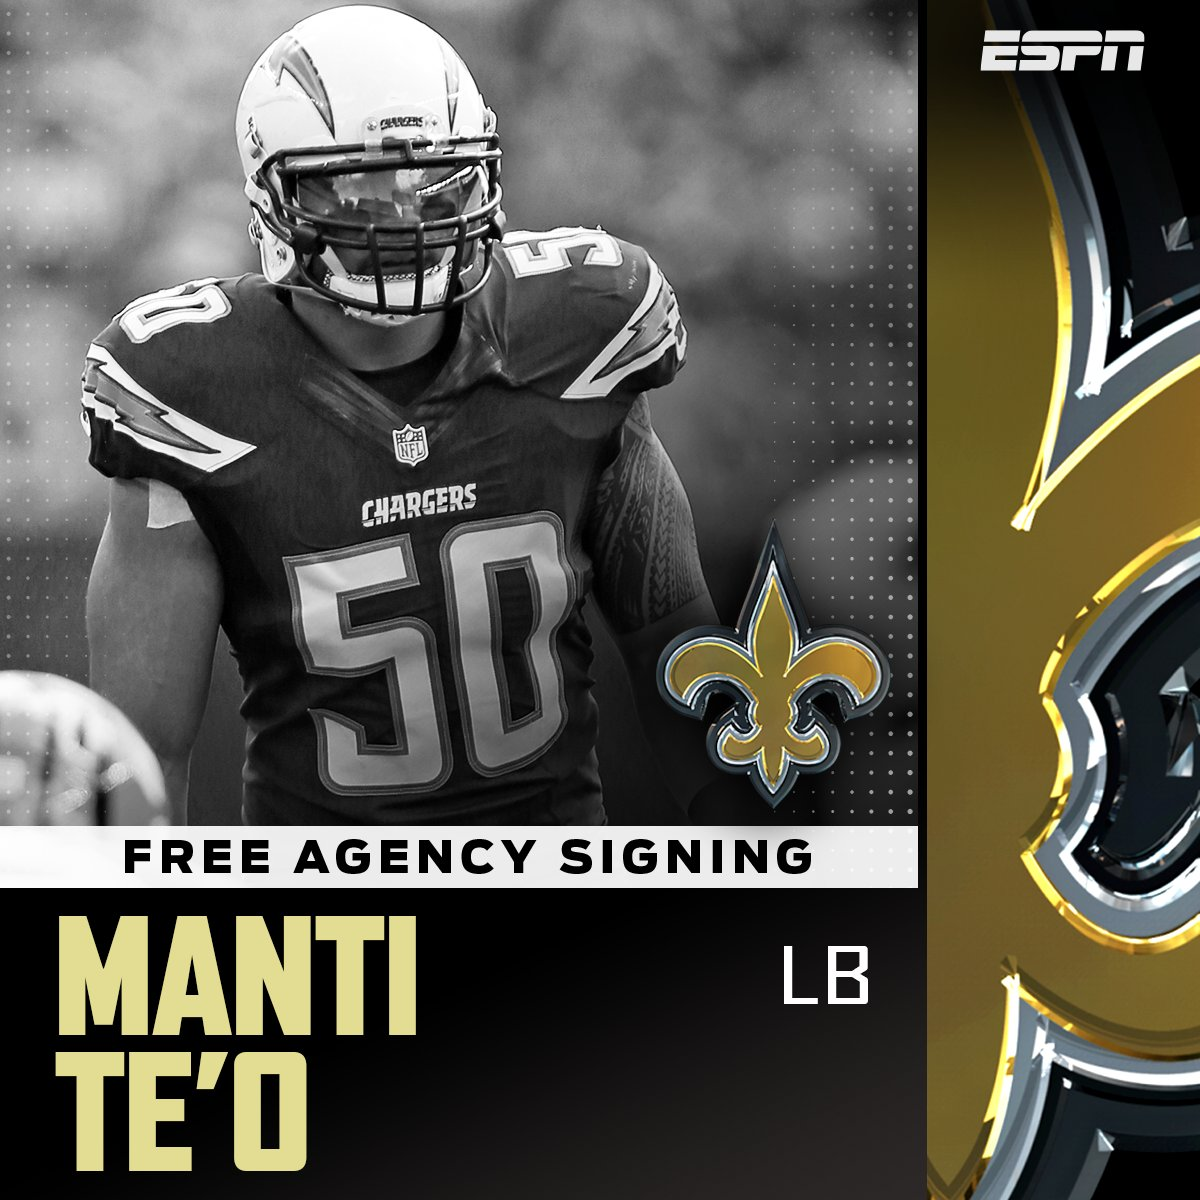 Former Chargers LB Manti Te'o is close to a deal with the Saints. (via @DanGrazianoESPN) https://t.co/u06L0krKfd https://t.co/YeqAjcPC3Q